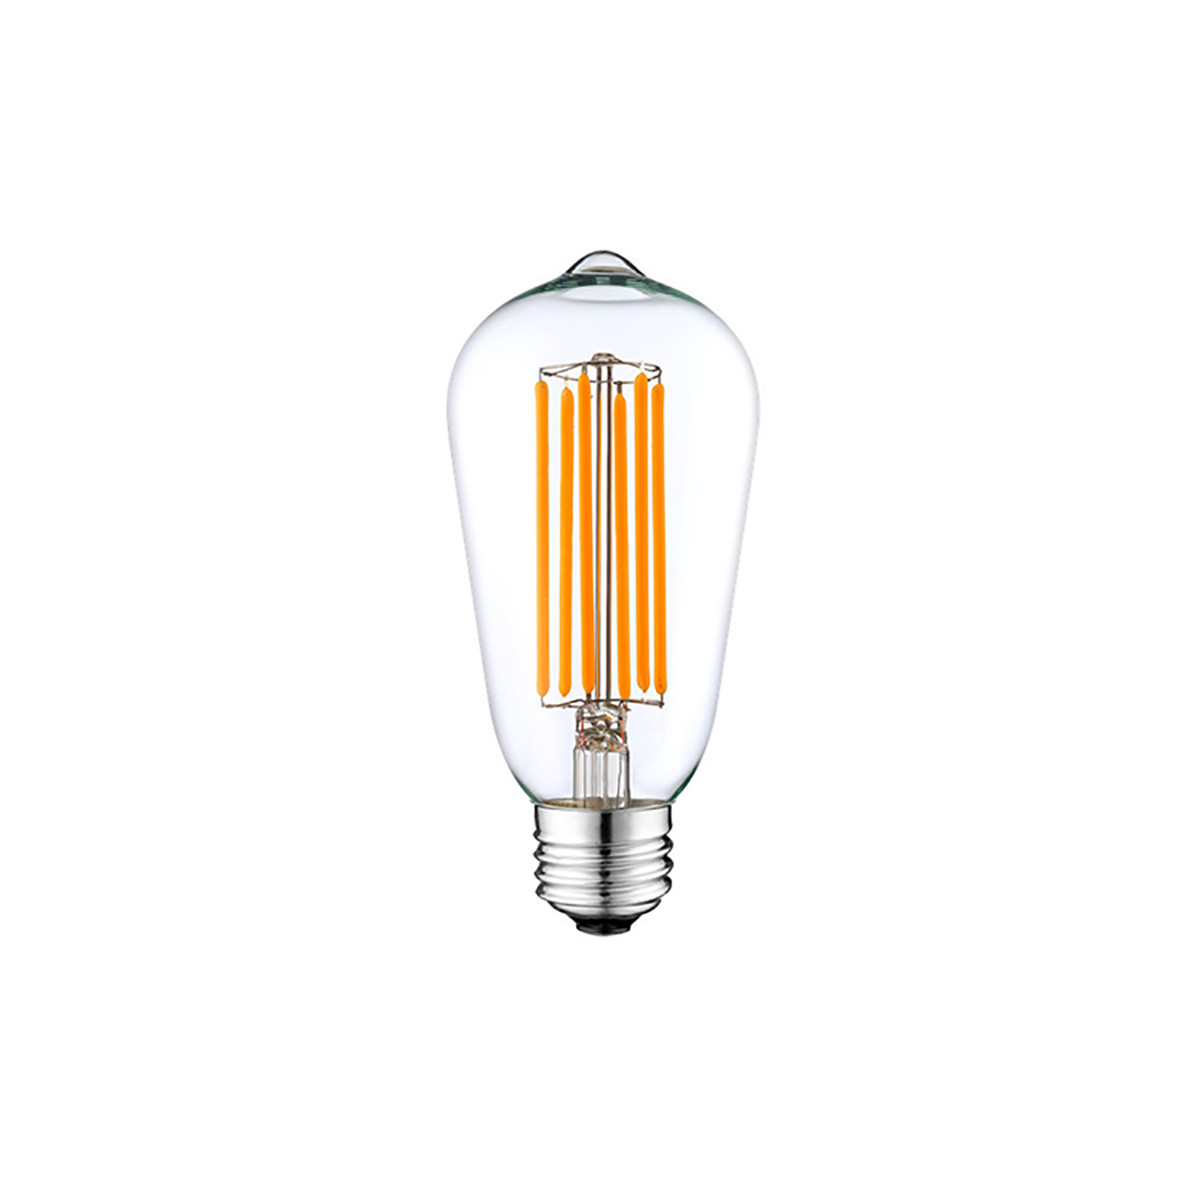 6W Filament LED T-Shape Light Bulb Light ST48 Chandelier Bulb with E26 Base 60W Equivalent Halogen Replacement